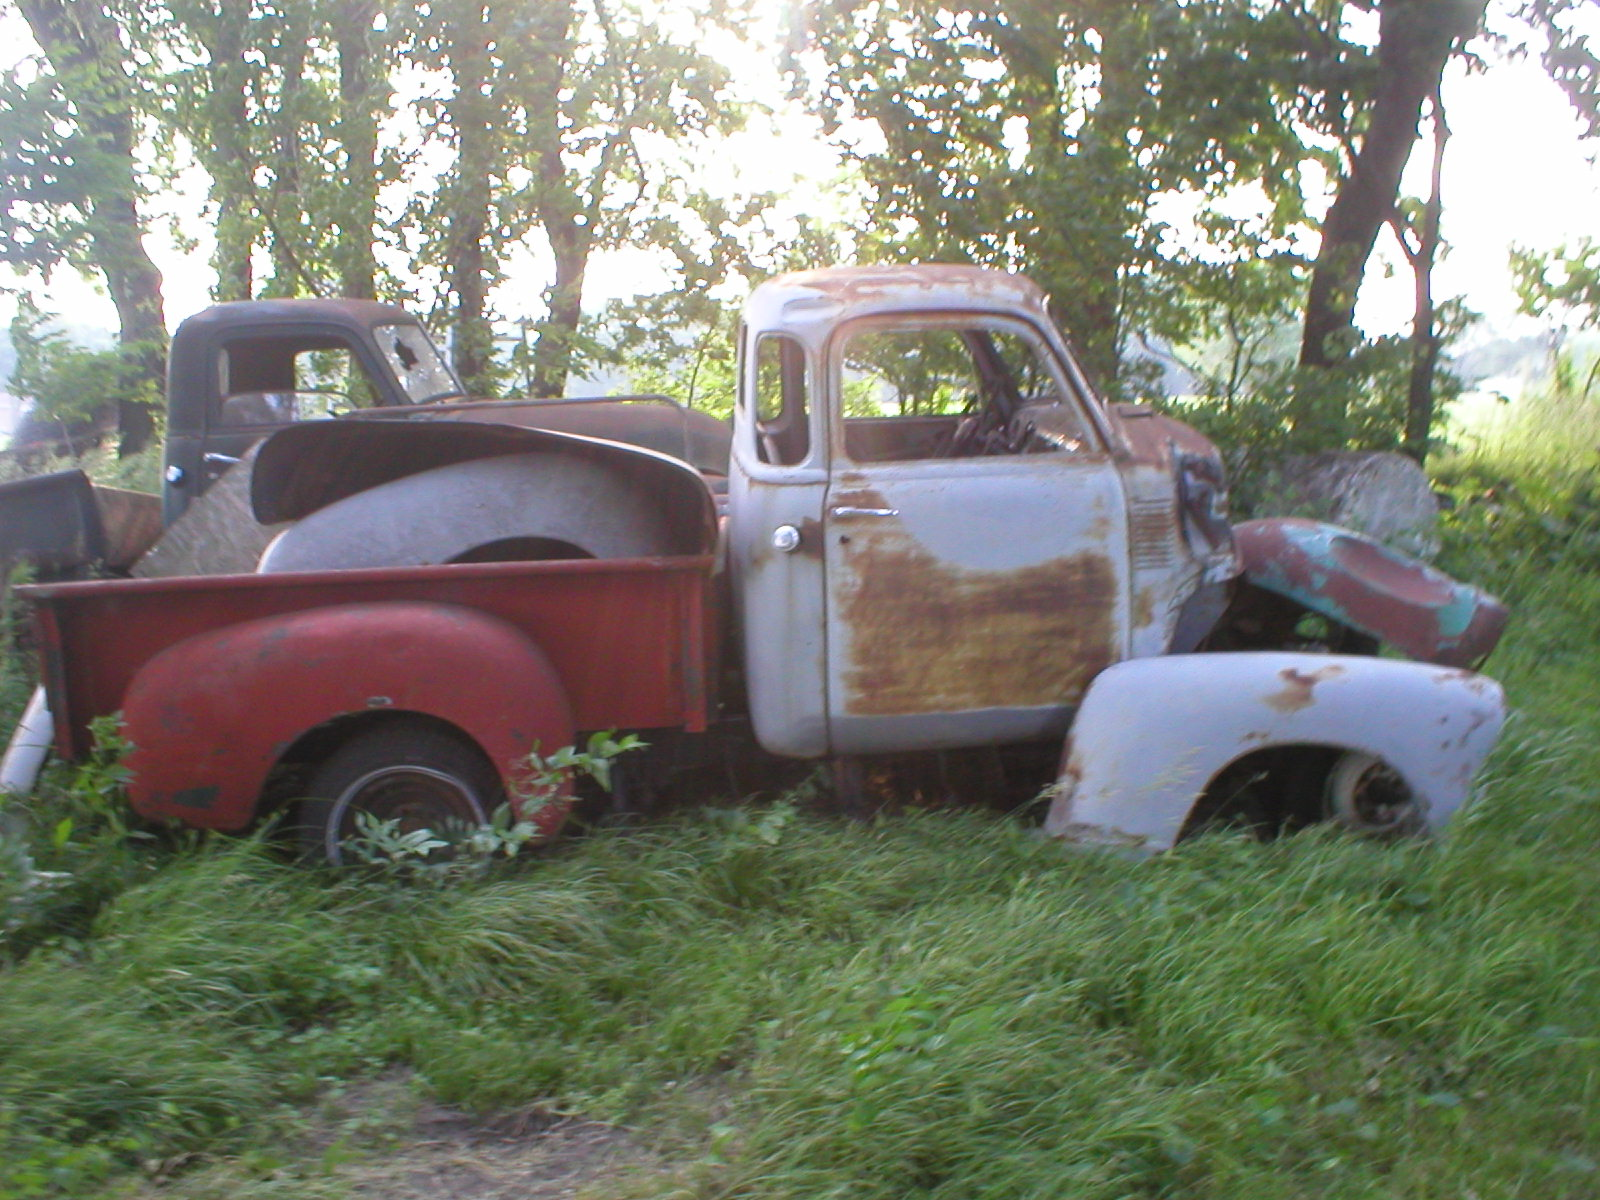 49 Chevy Truck 1949 Vin Number